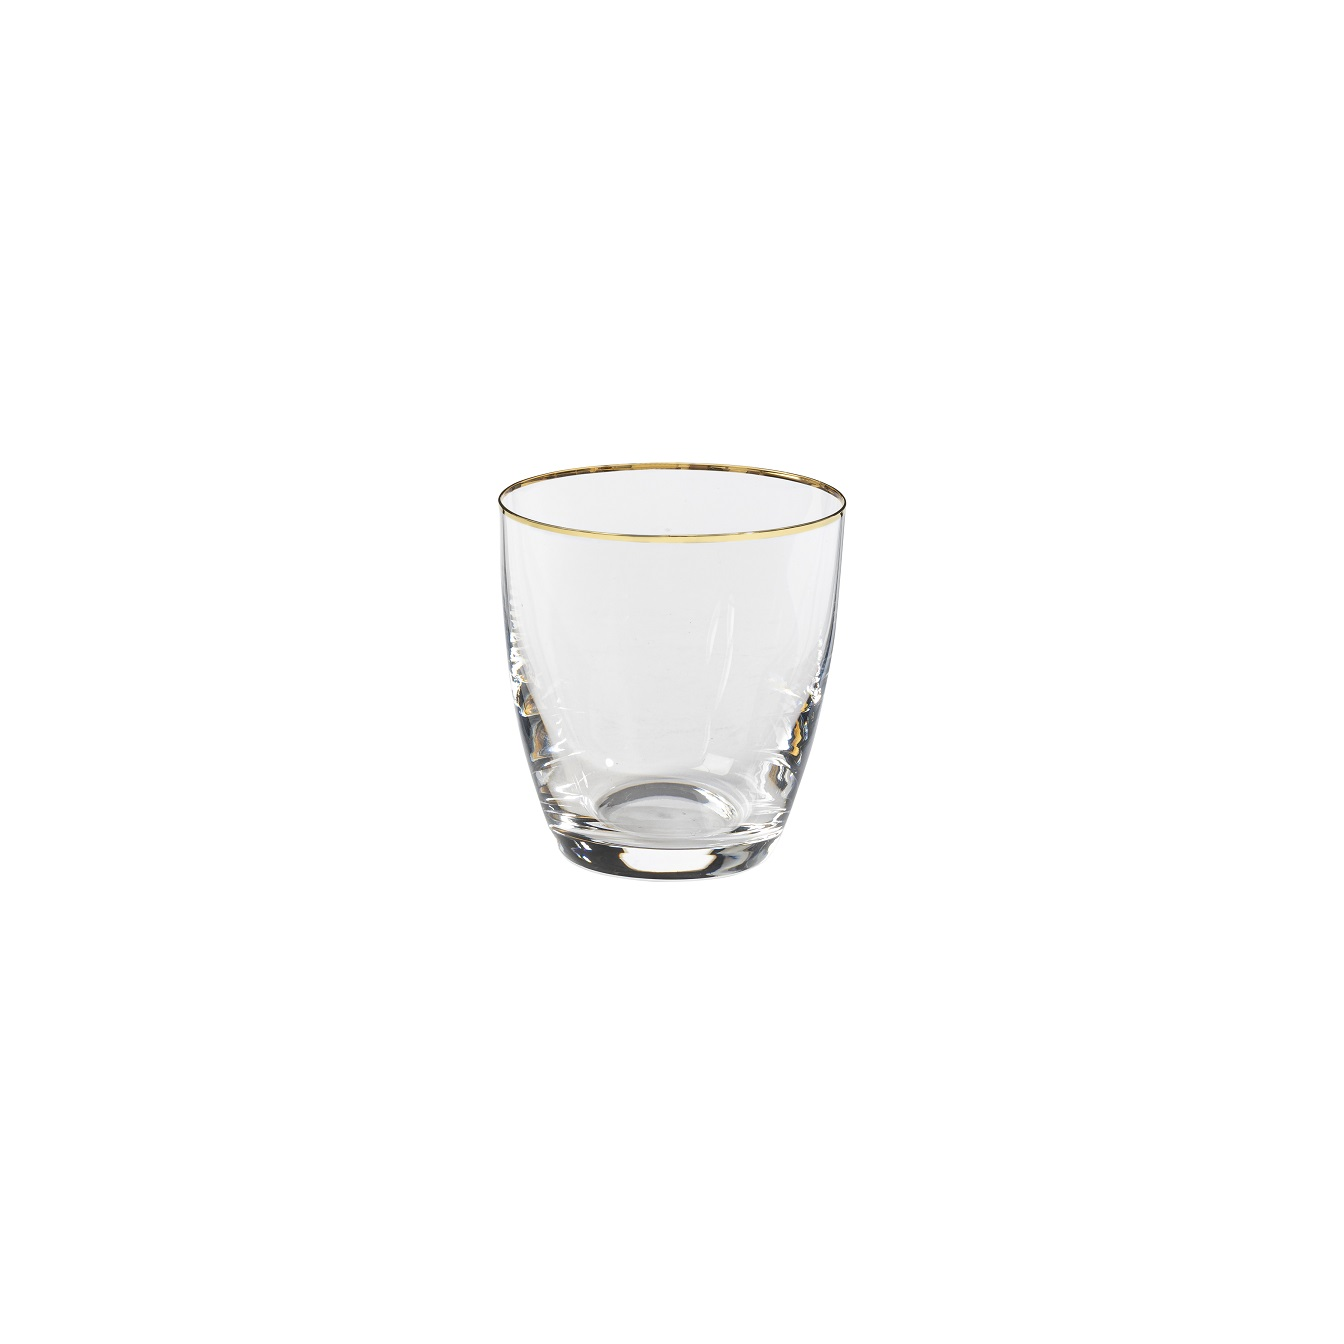 Sensa Tumbler 300ml Golden Rim Sparkle Gift